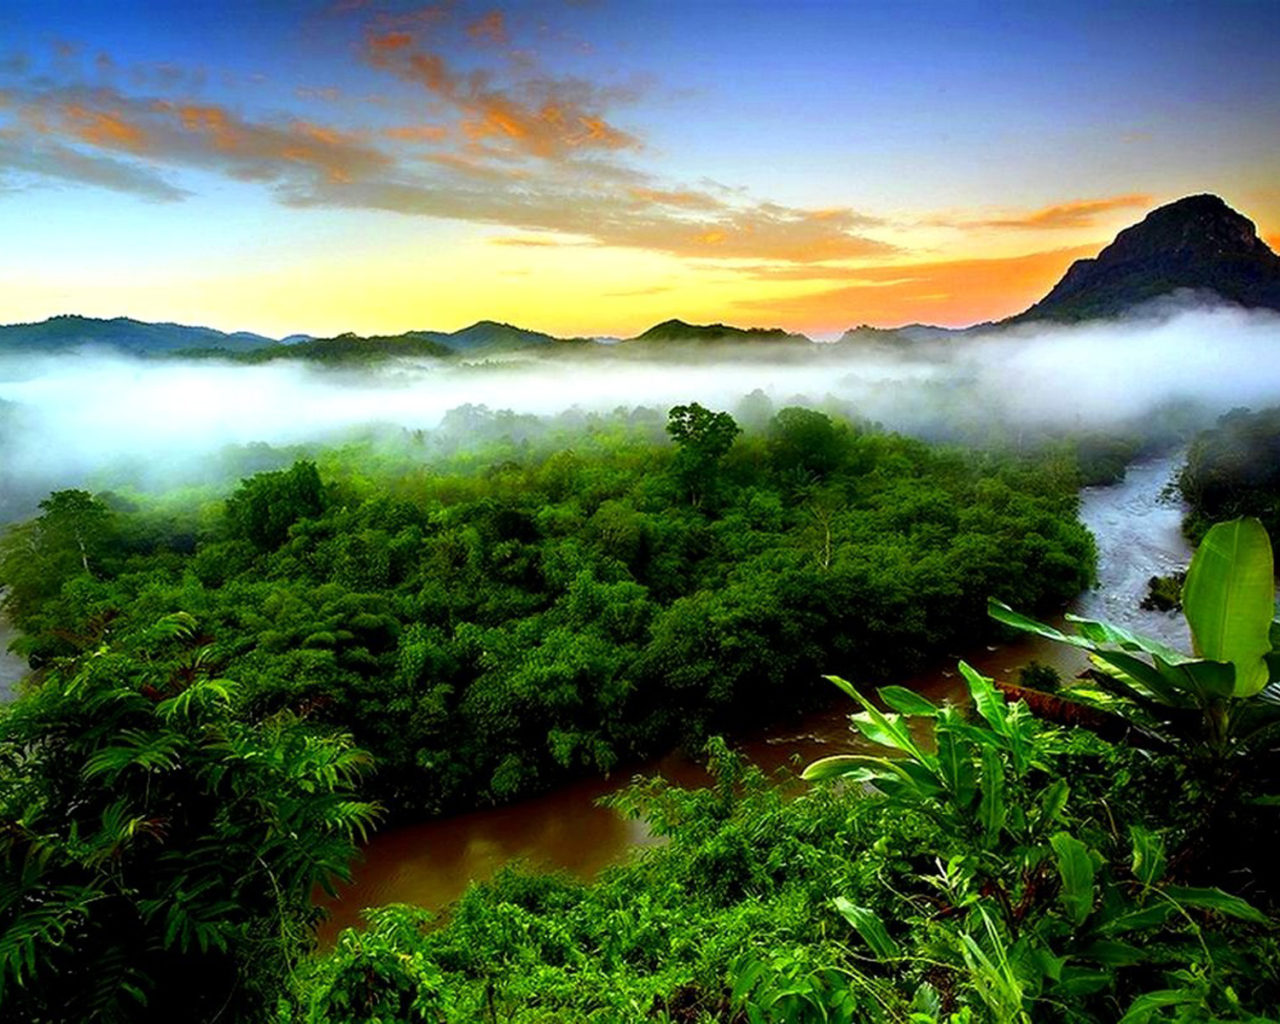 Wallpapers For Desktop Fall Colors Tropical Rainforest Mist Evaporation Green Forest Mountain